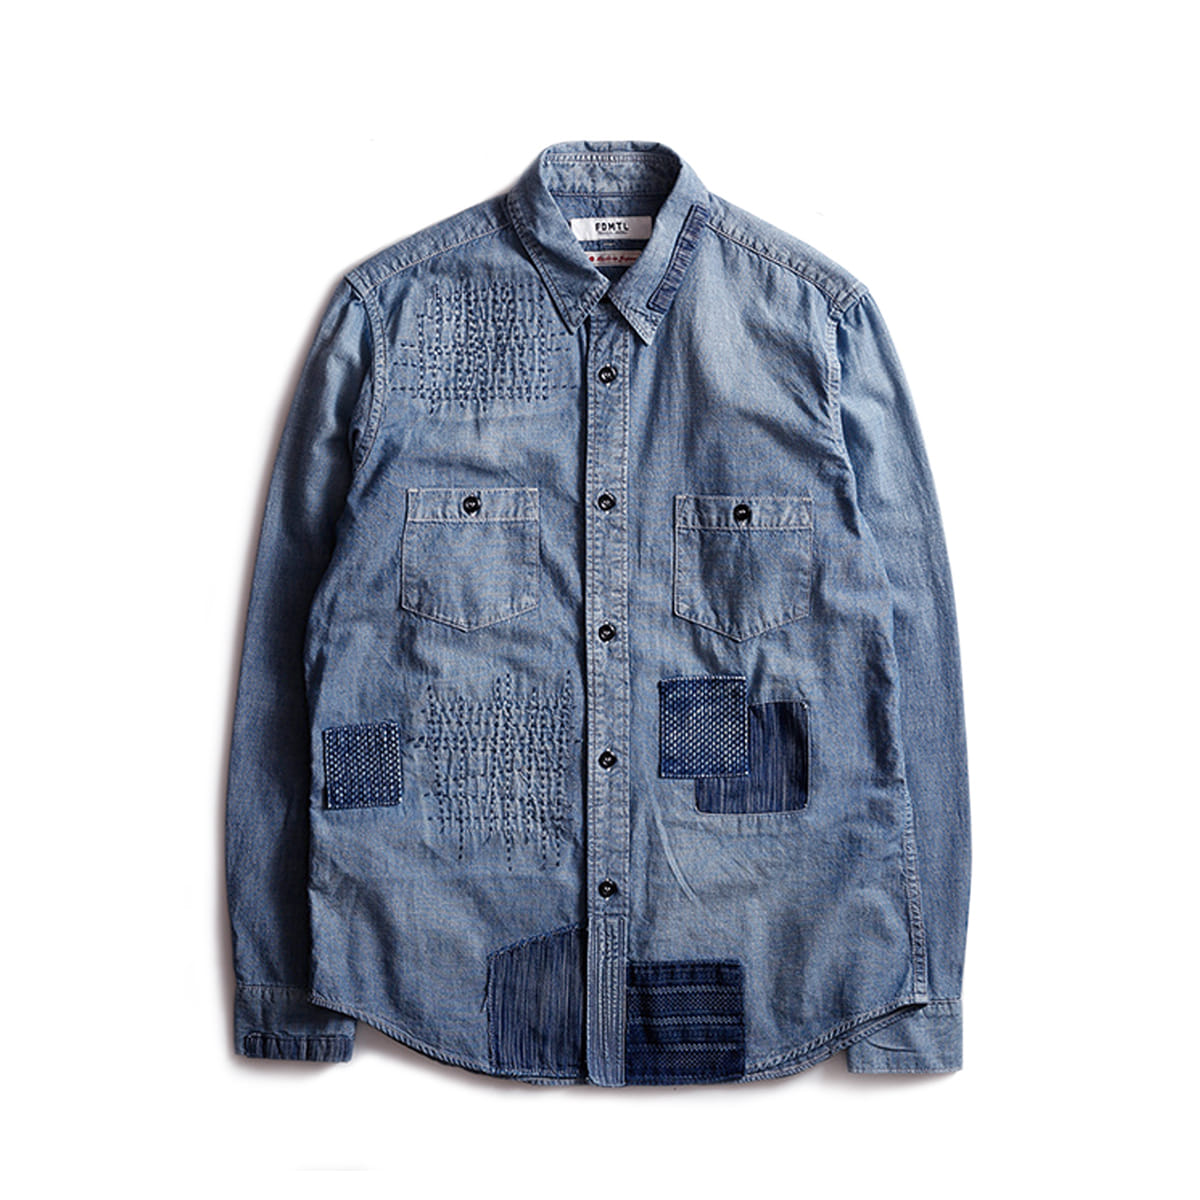 [FDMTL] DENIM SHIRT 3YR WASH 'INDIGO'